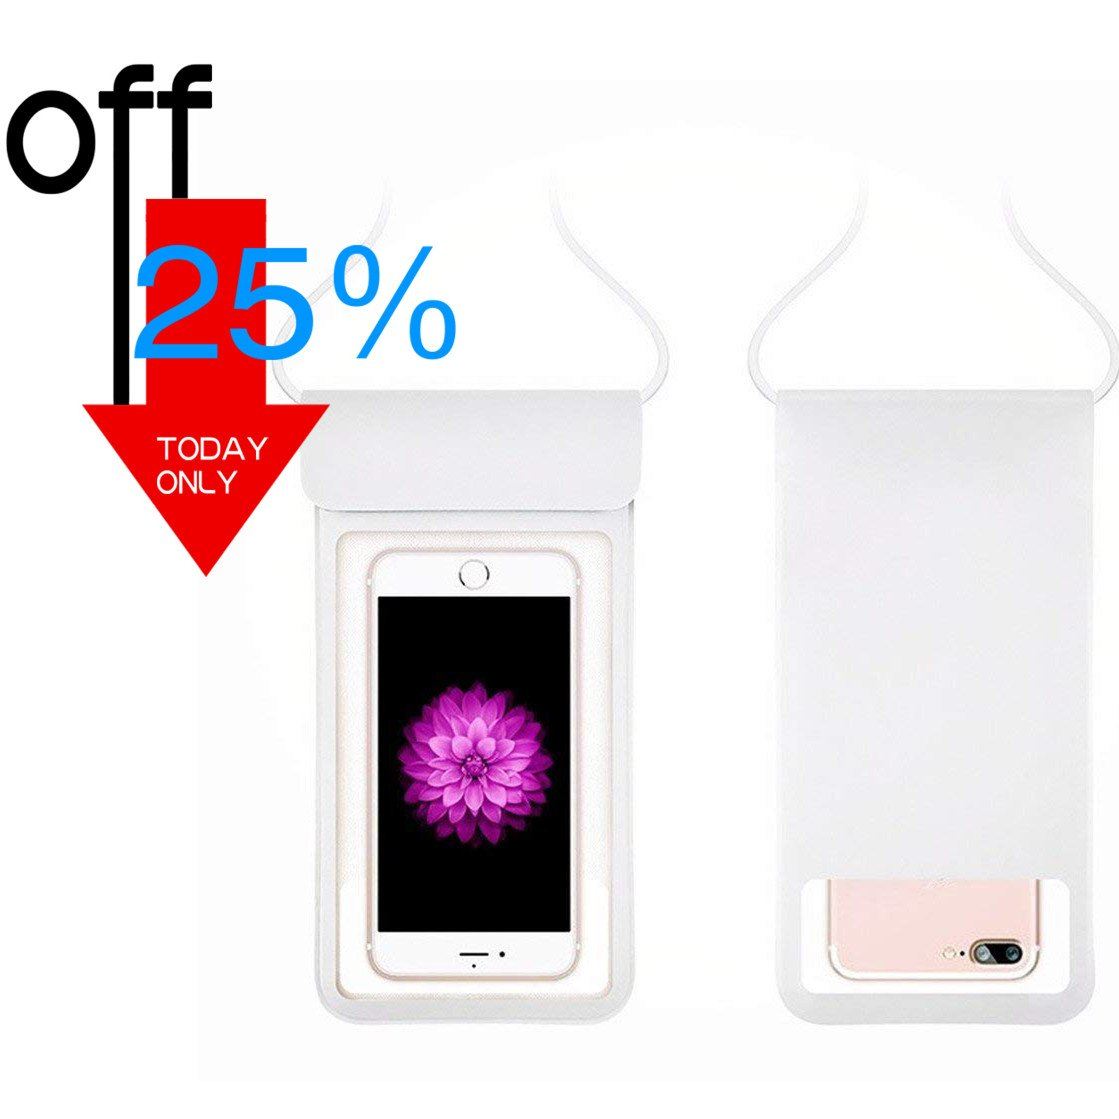 """[2018 NEW] Waterproof Case with Touch ID,Coeuspow Dry Bag Pouch with High Sensitive Fingerprint Recognition for Apple iPhone X 8 7 6 6s Plus, Galaxy etc up to 6.0"""" (white) by Coeuspow (Image #1)"""